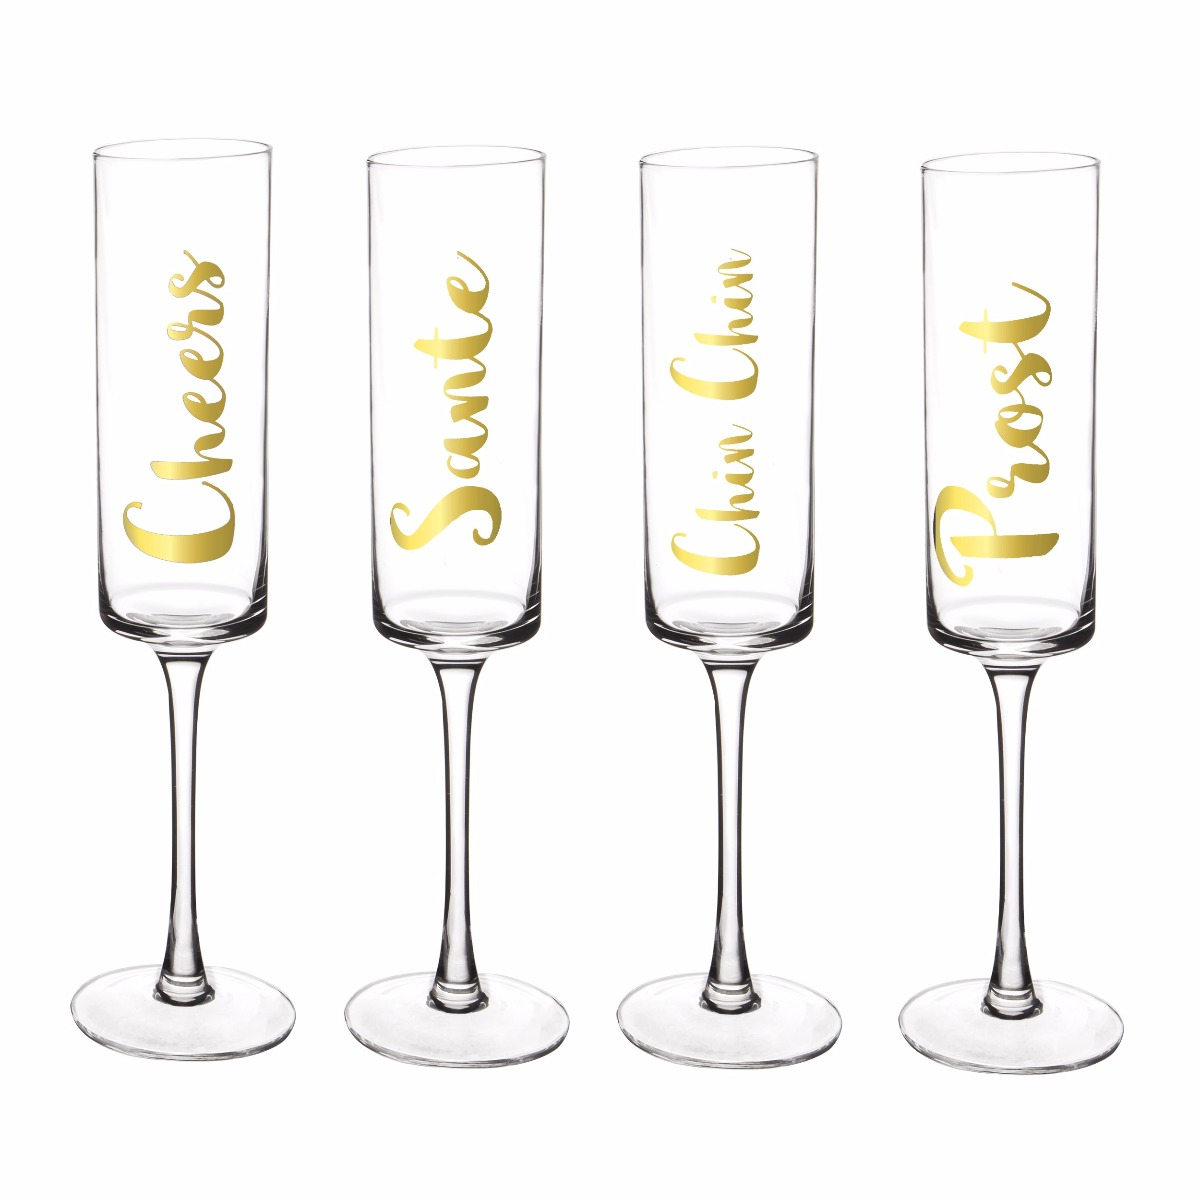 Gold Cheers Champagne Flutes (set of 4)